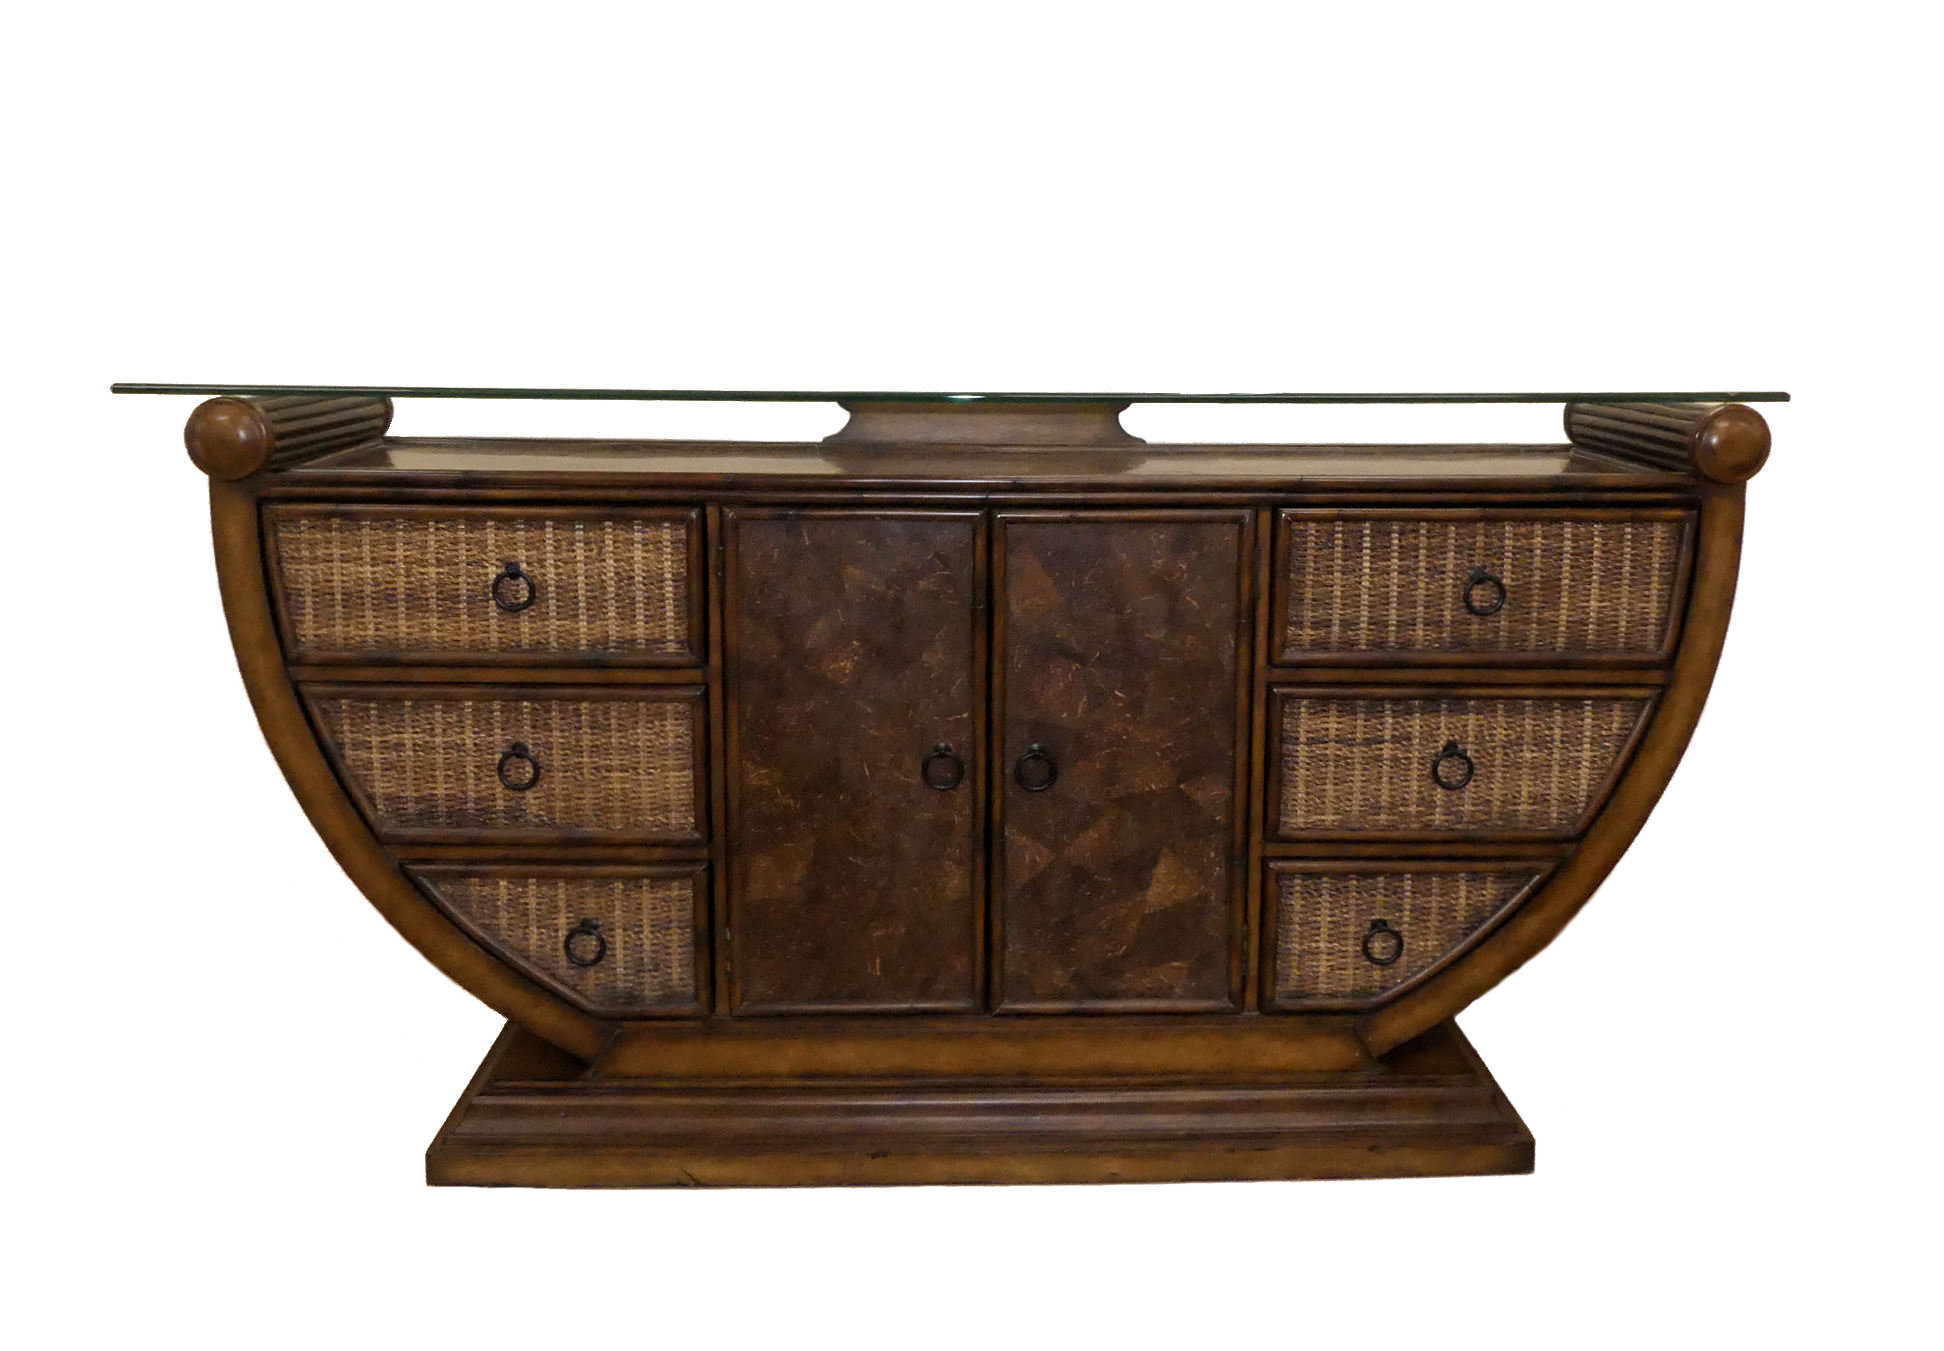 SOLD Bamboo, Woven Abaca and Coconut Shell Credenza